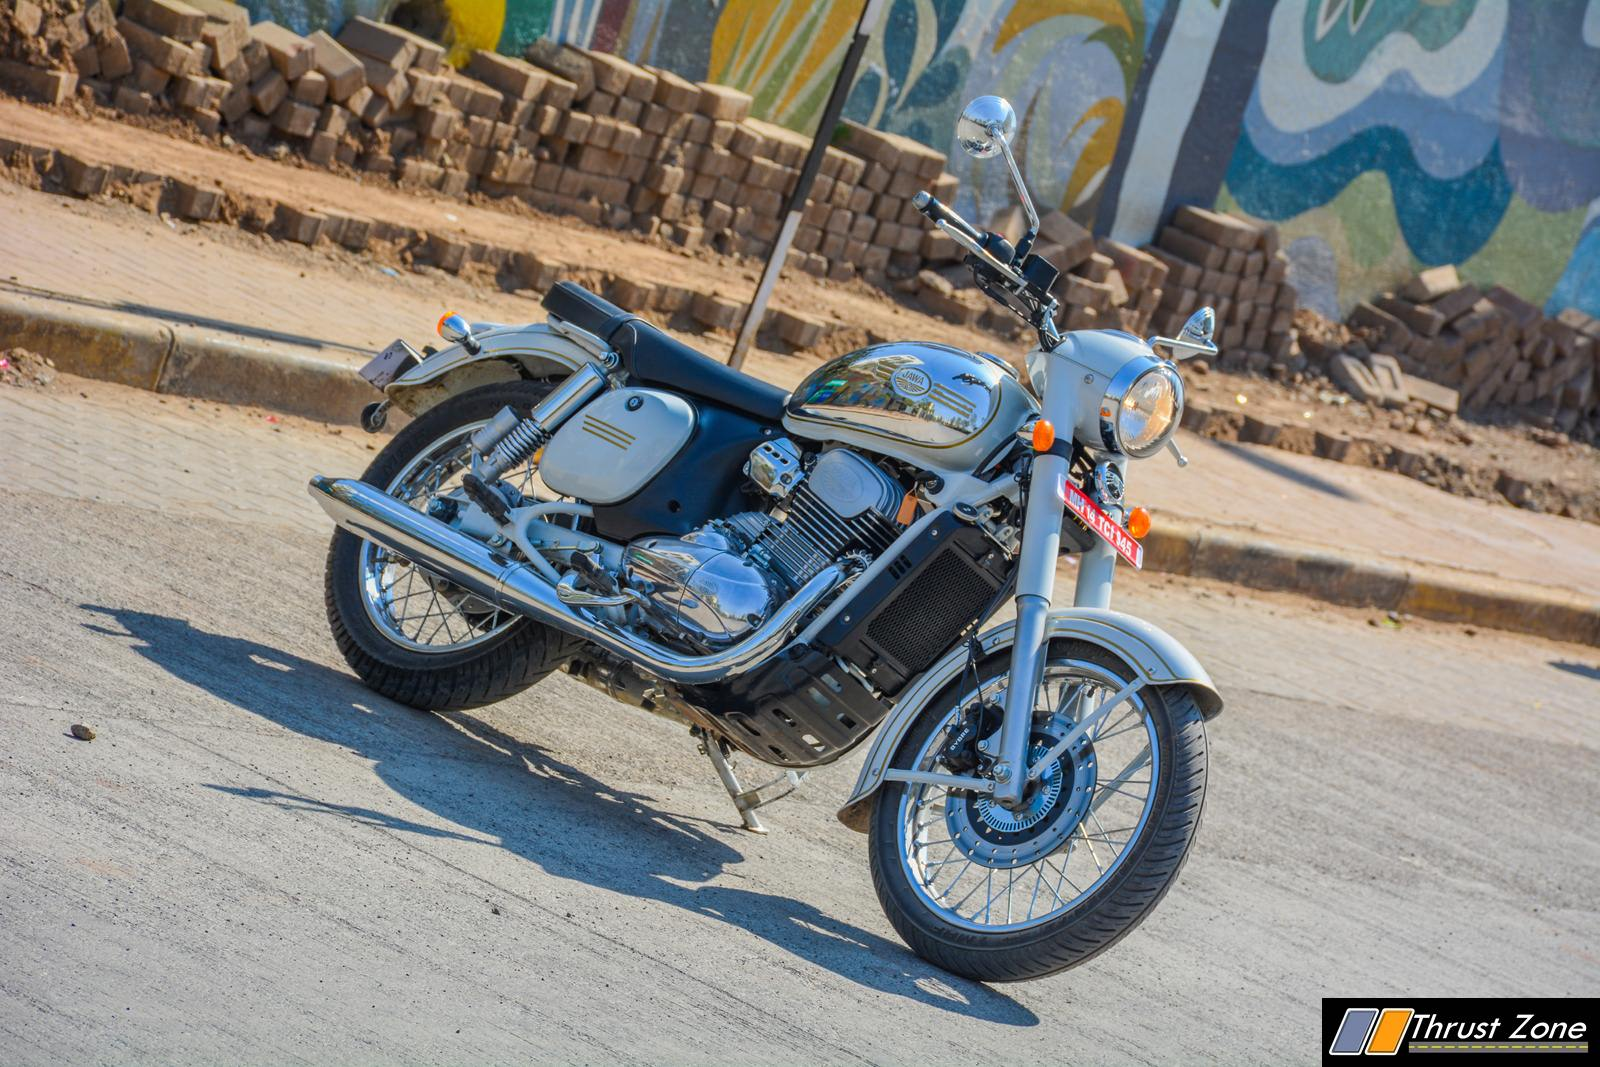 http://www.thrustzone.com/wp-content/uploads/2019/01/jawa-300-classic-india-review-4.jpg